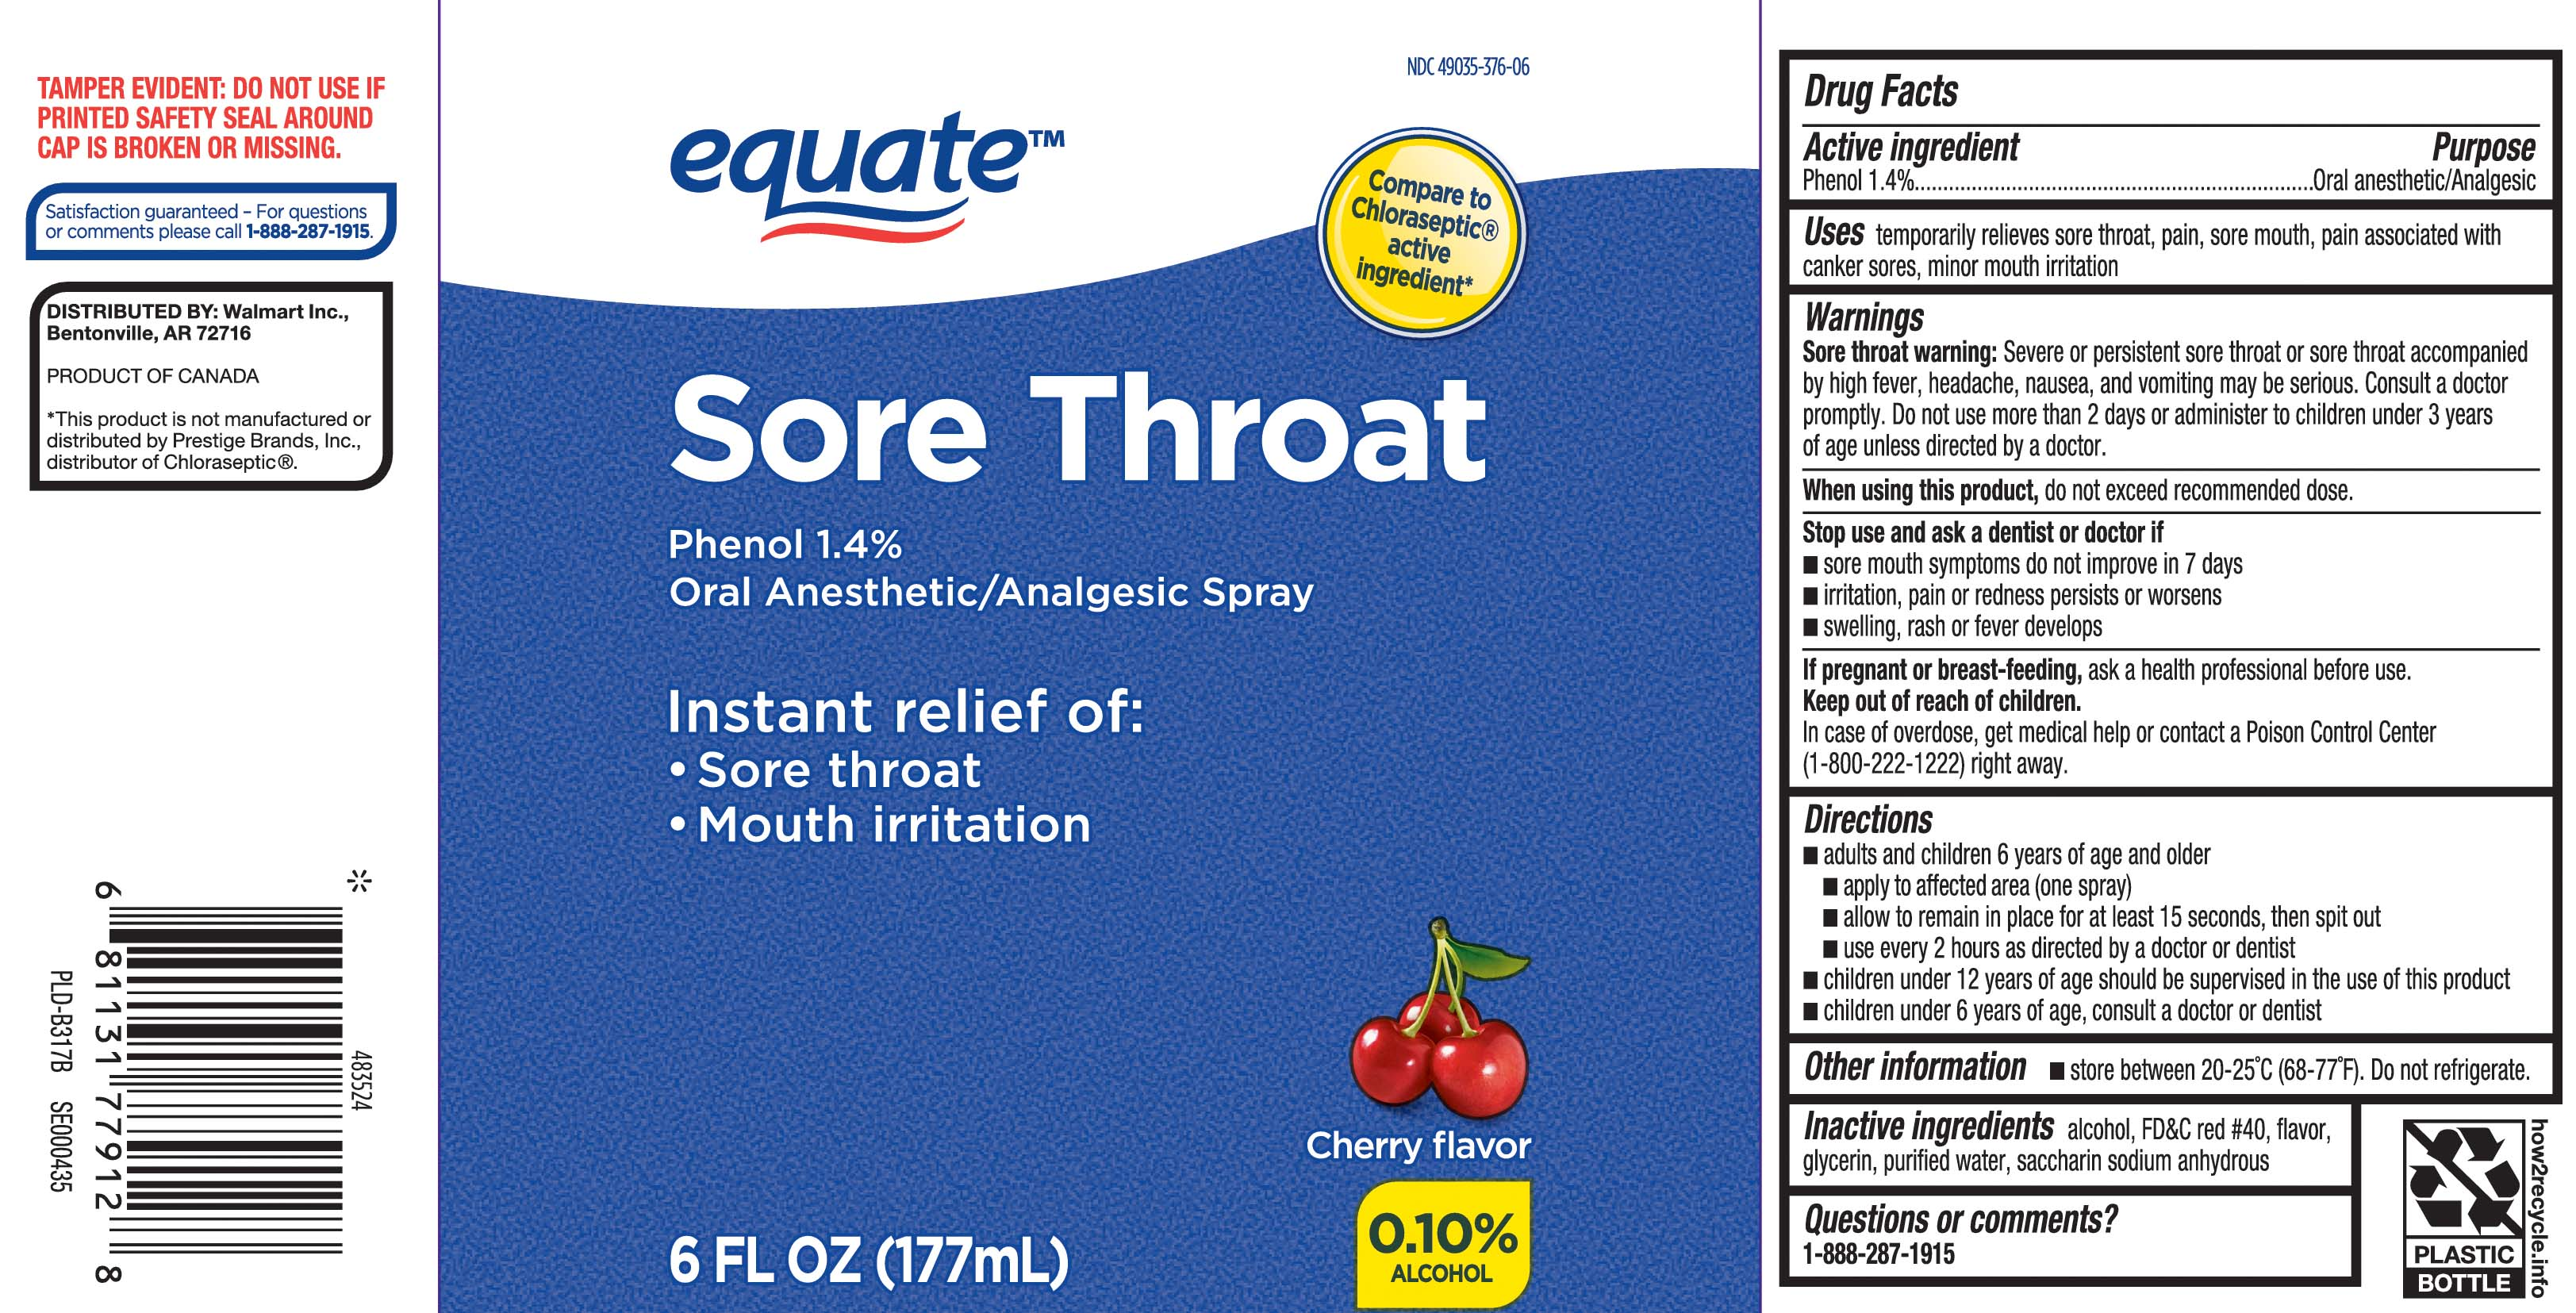 Prescription Drugs Manufactured By Equate (walmart Stores